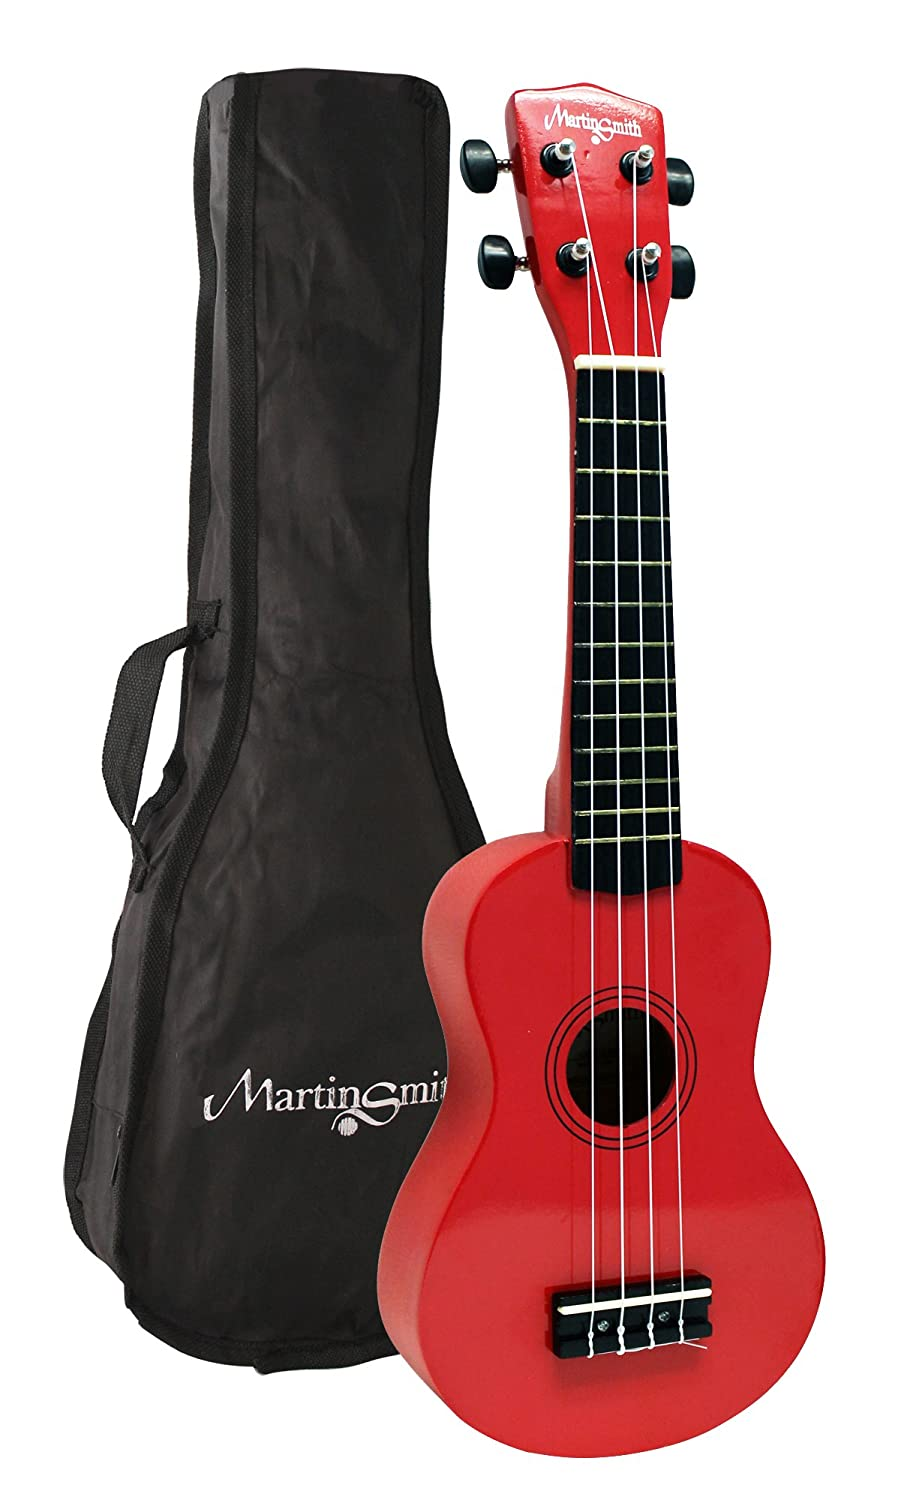 Martin Smith Soprano Ukulele - Red UK-212-RD